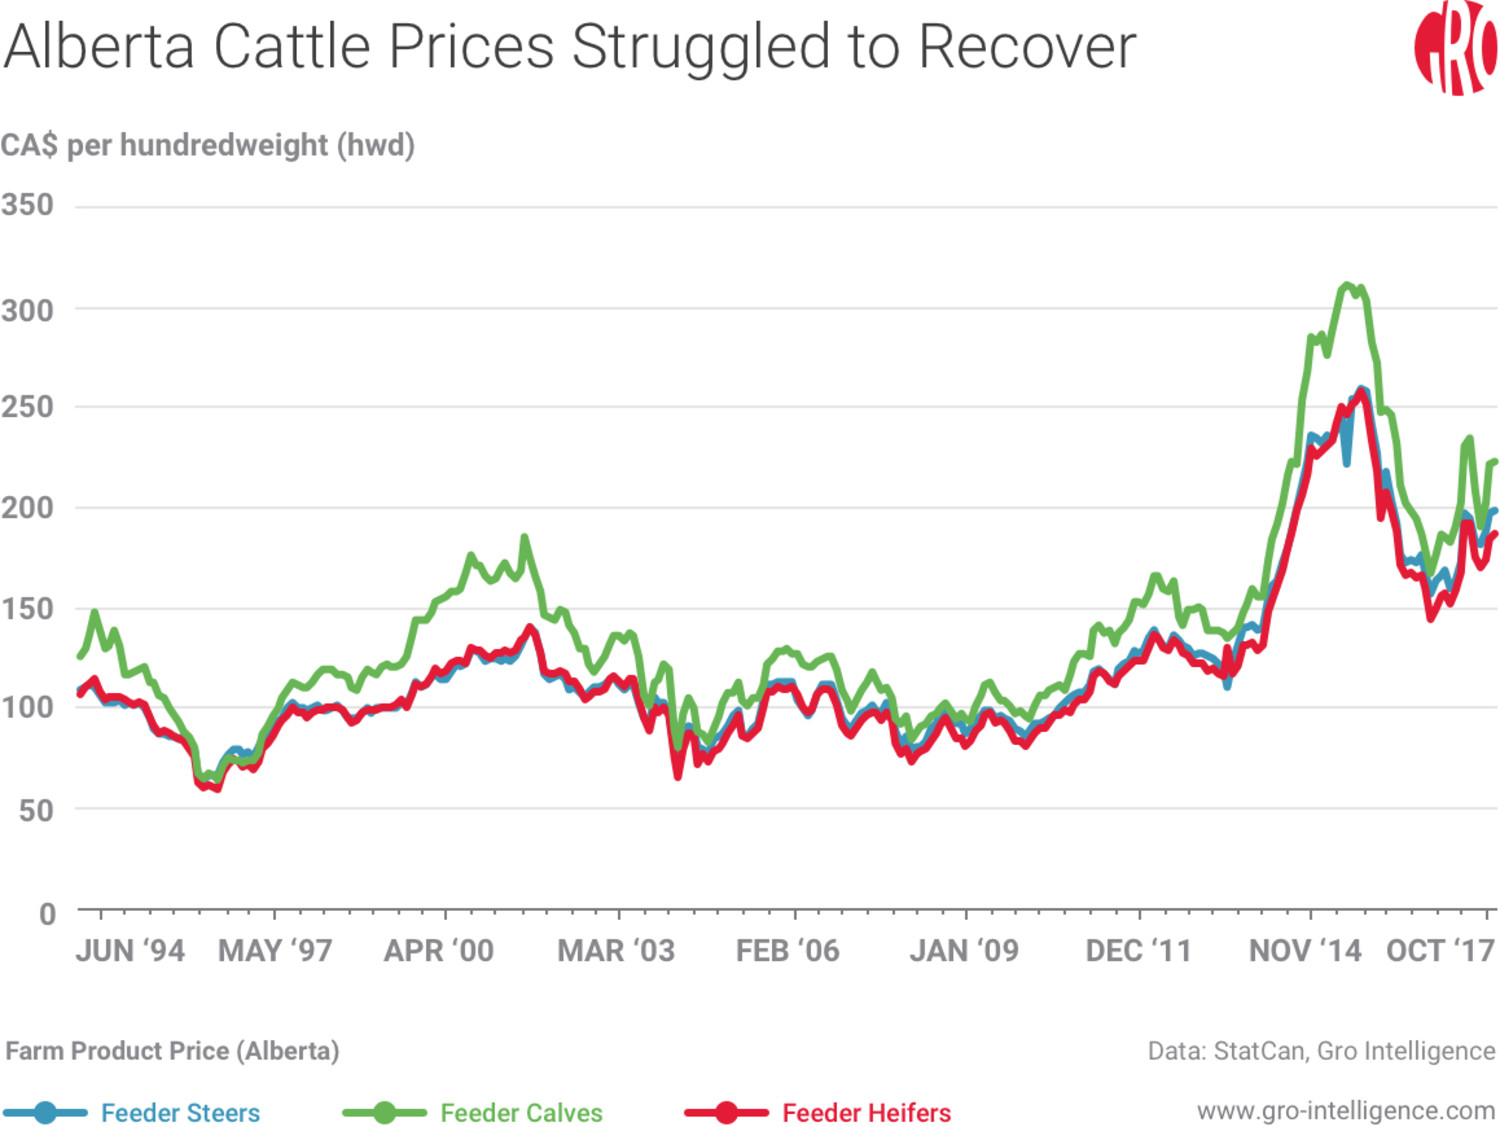 Alberta Cattle Prices